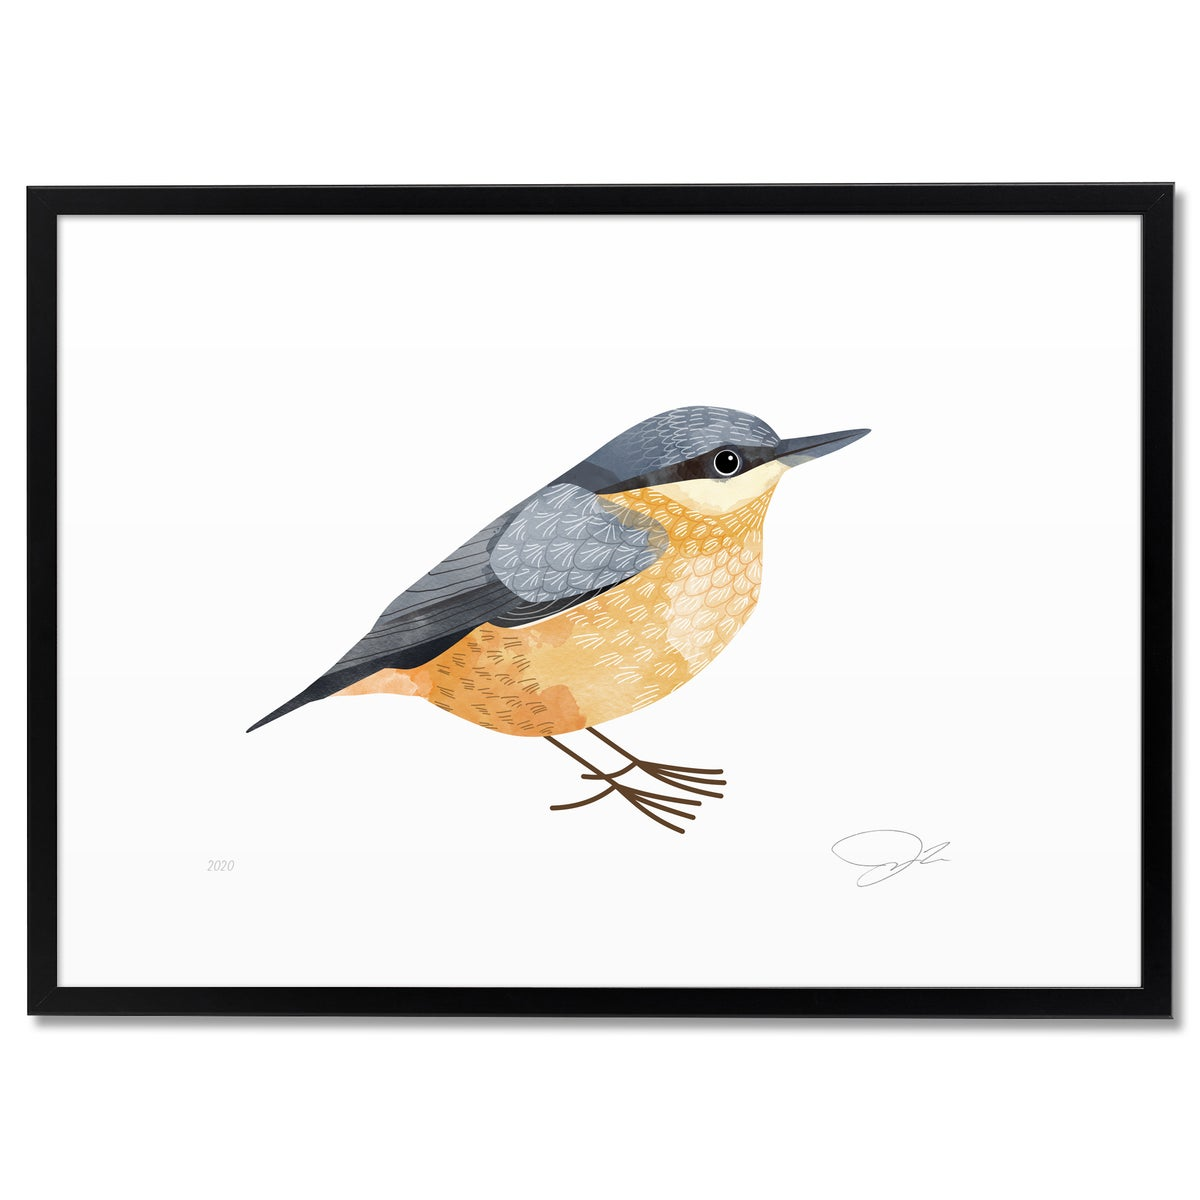 Image of Print: Nuthatch (Kleiber)